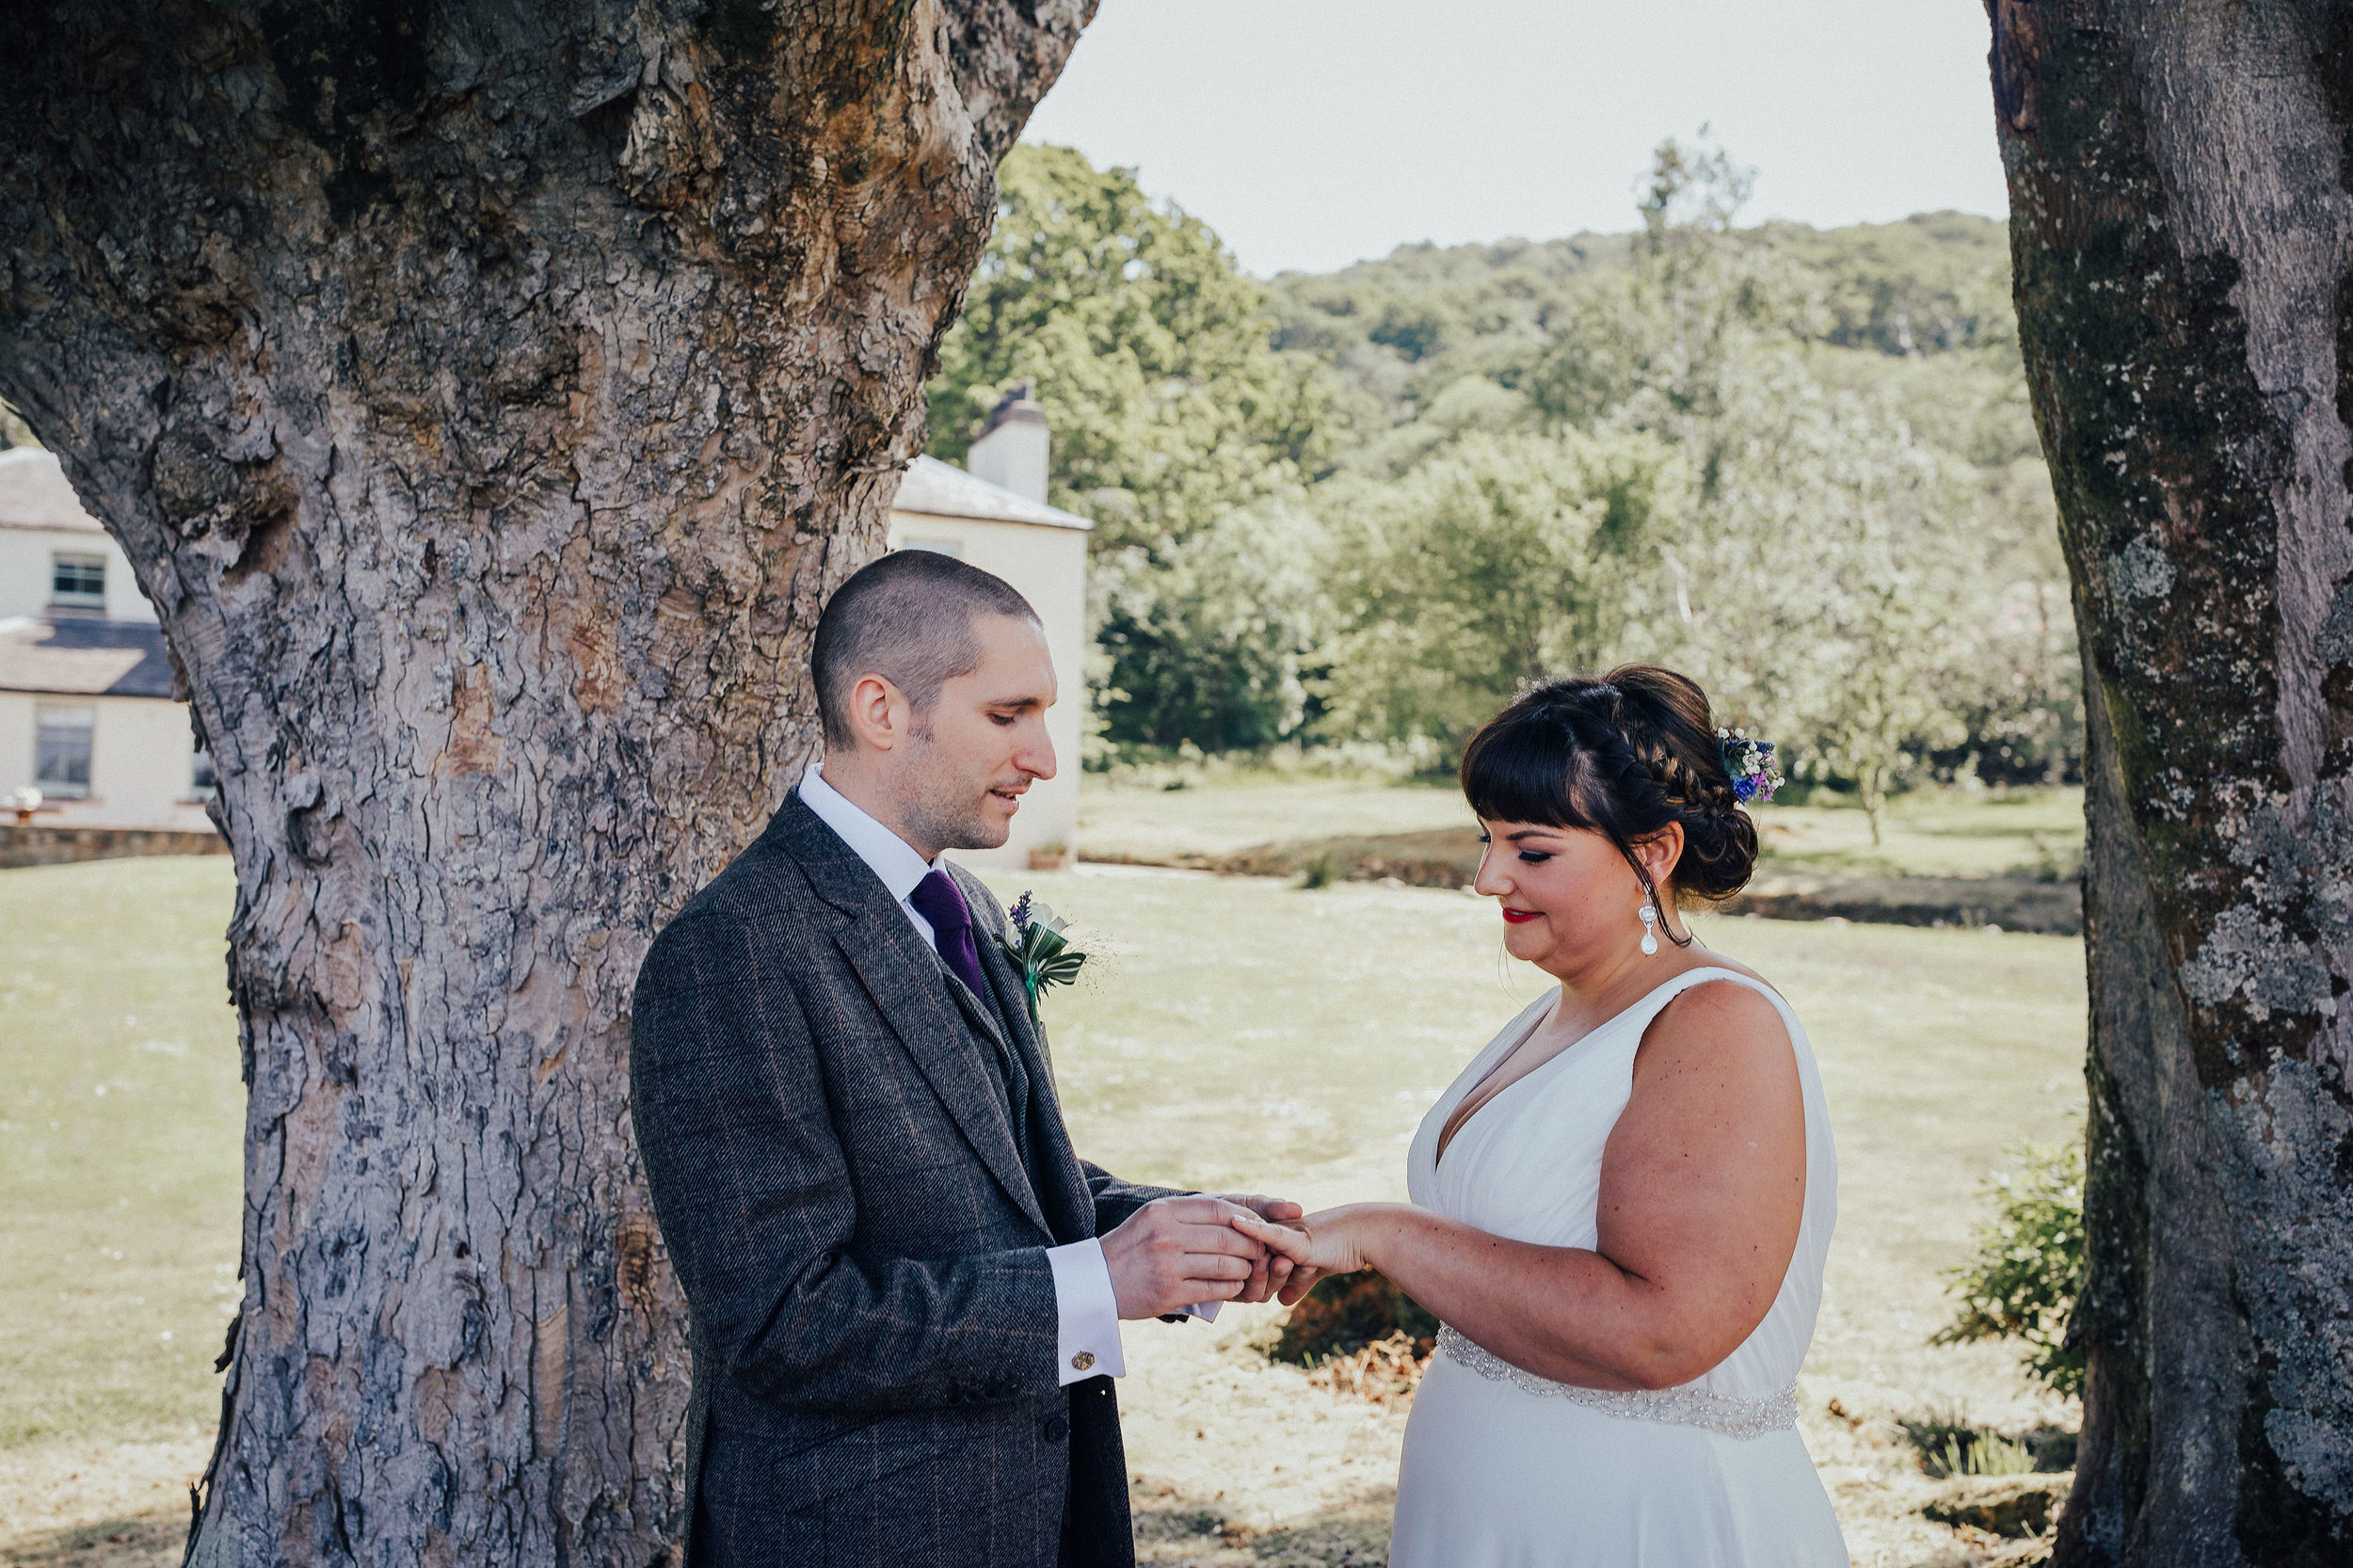 SCOTTISH_ELOPEMENT_PHOTOGRAPHER_PJ_PHILLIPS_PHOTOGRAPHY_66.jpg